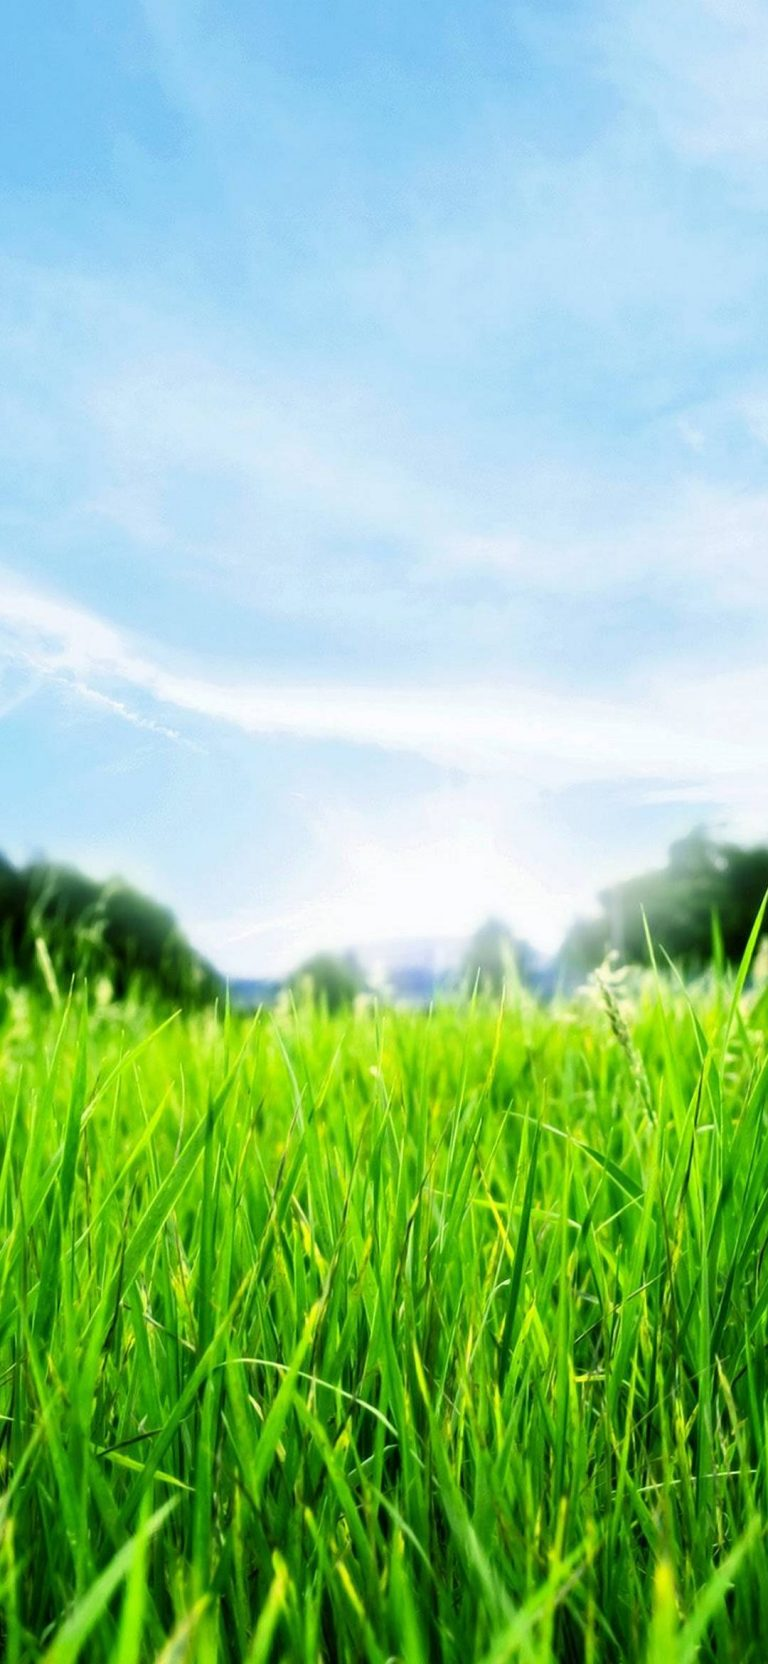 Green Grass HD 1080x2340 768x1664